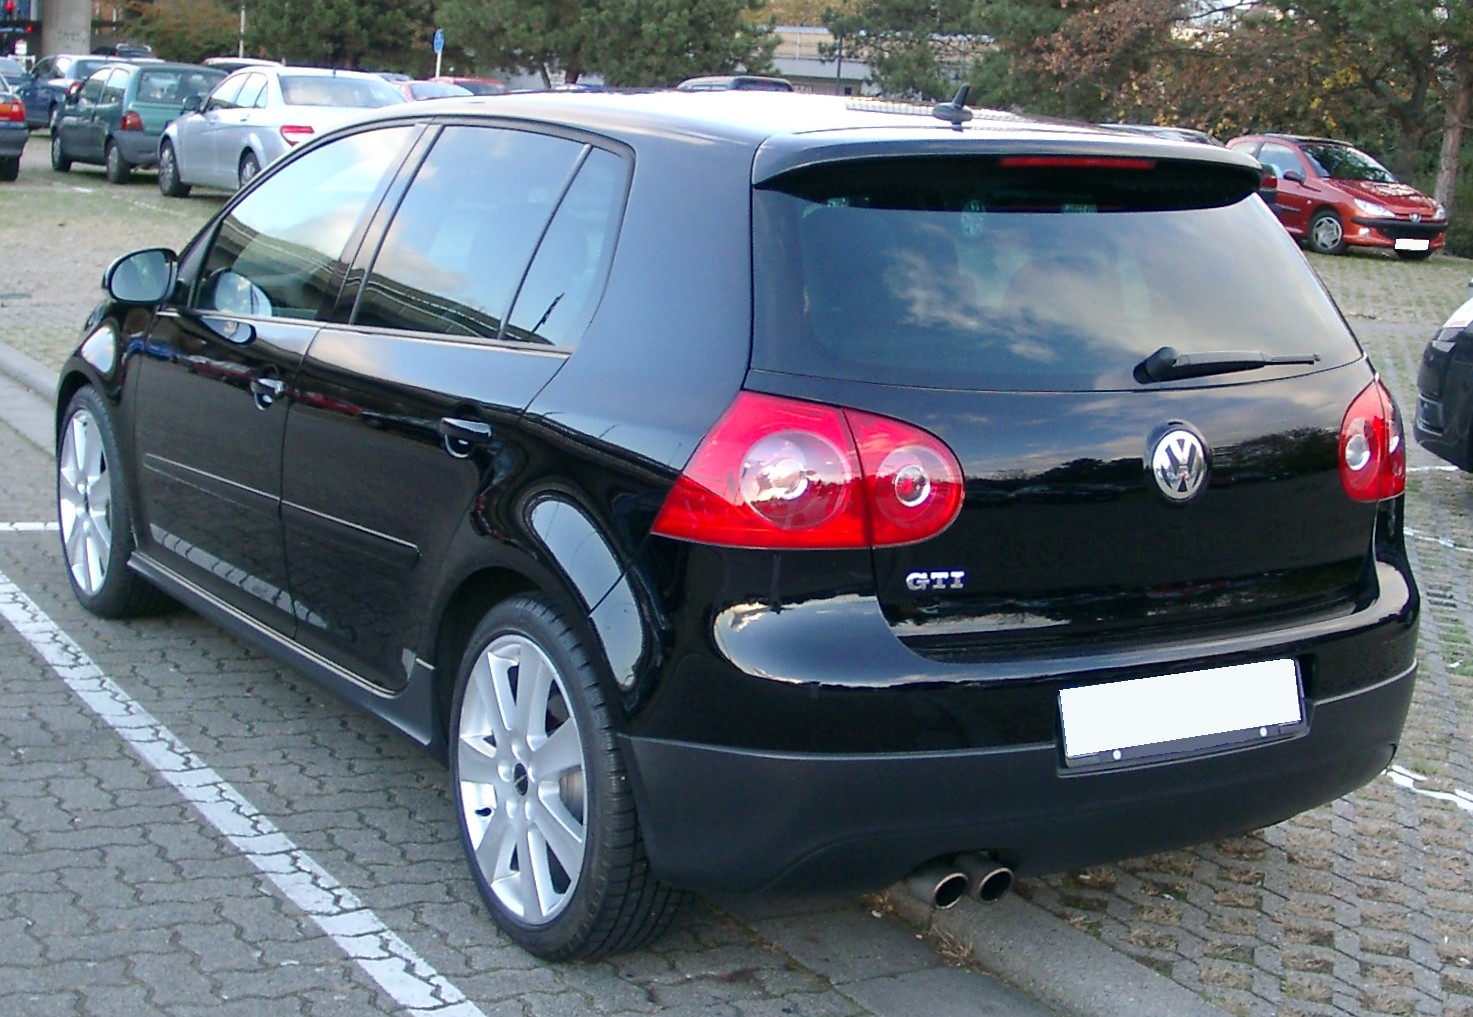 file vw golf v gti rear wikimedia commons. Black Bedroom Furniture Sets. Home Design Ideas